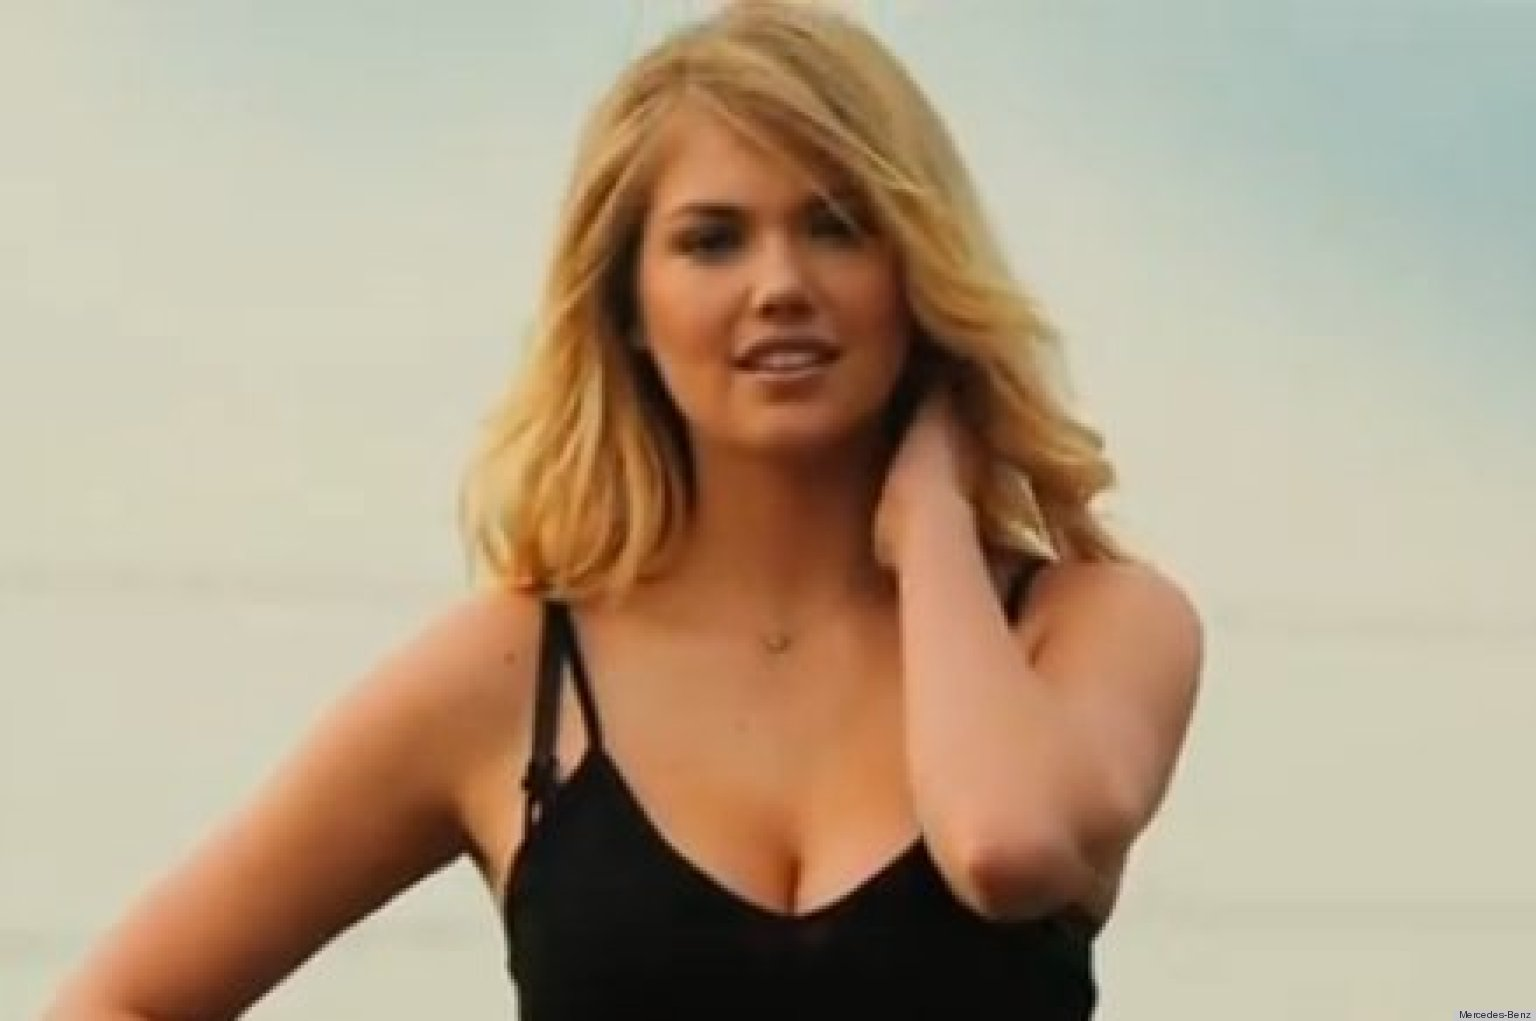 Kate Upton Leaked Naked Photos